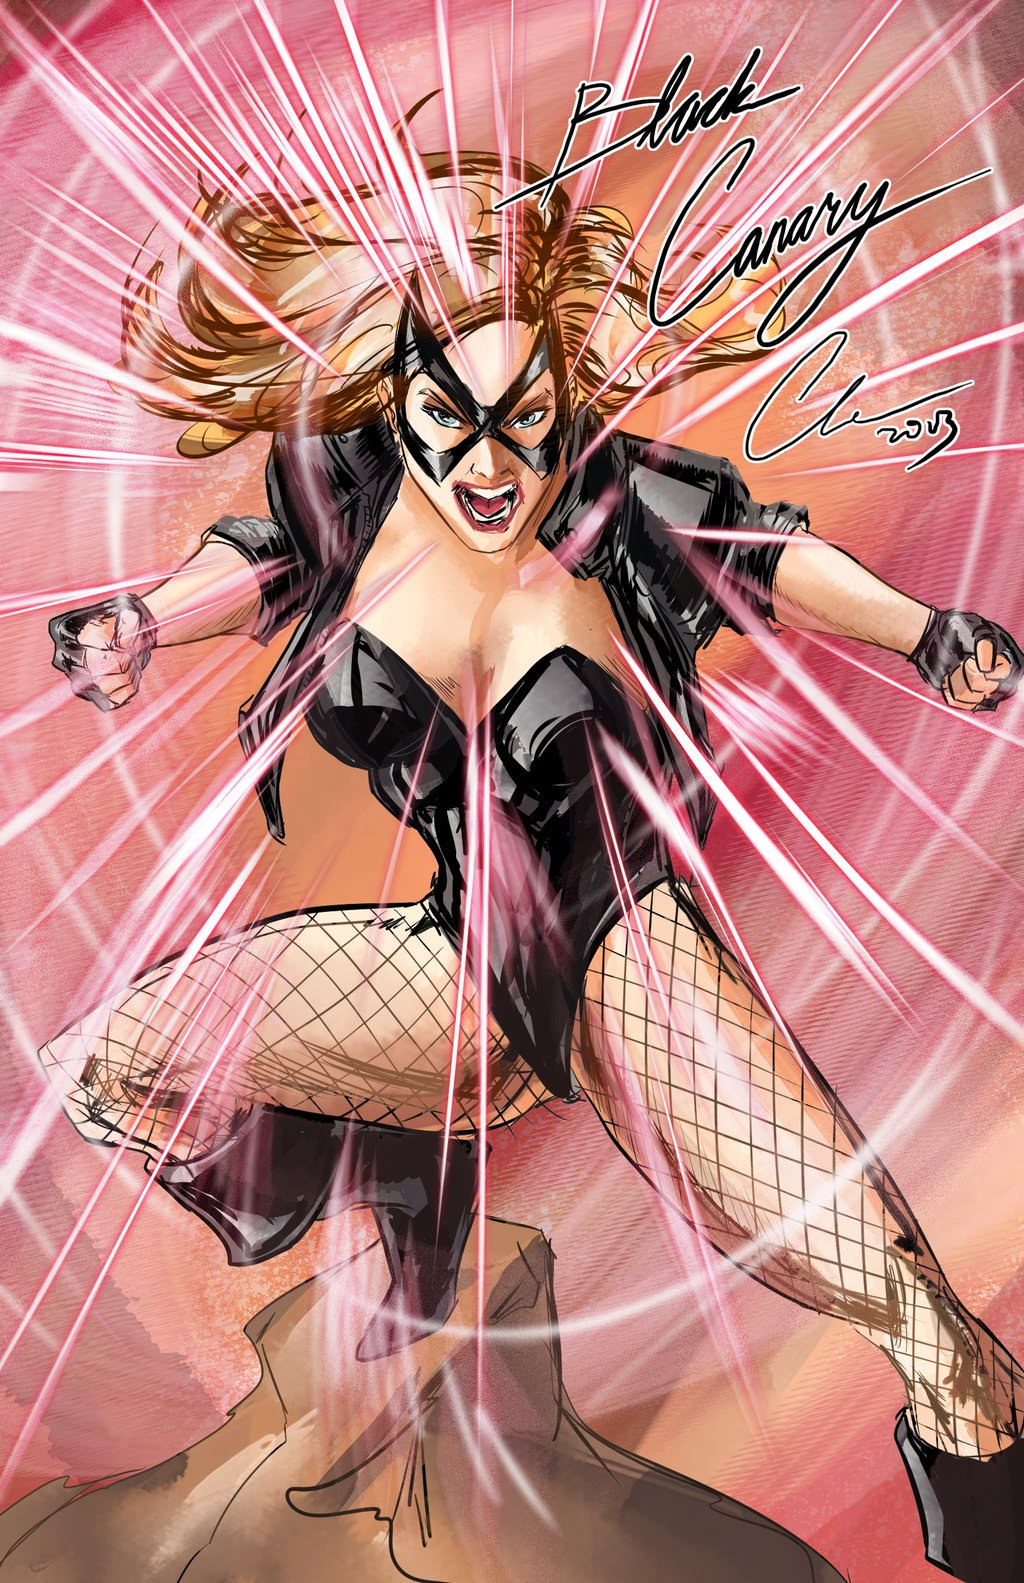 Black Canary, the 'Canary Cry' — a high powered sonic scream that could shatter objects and incapacitate enemies.